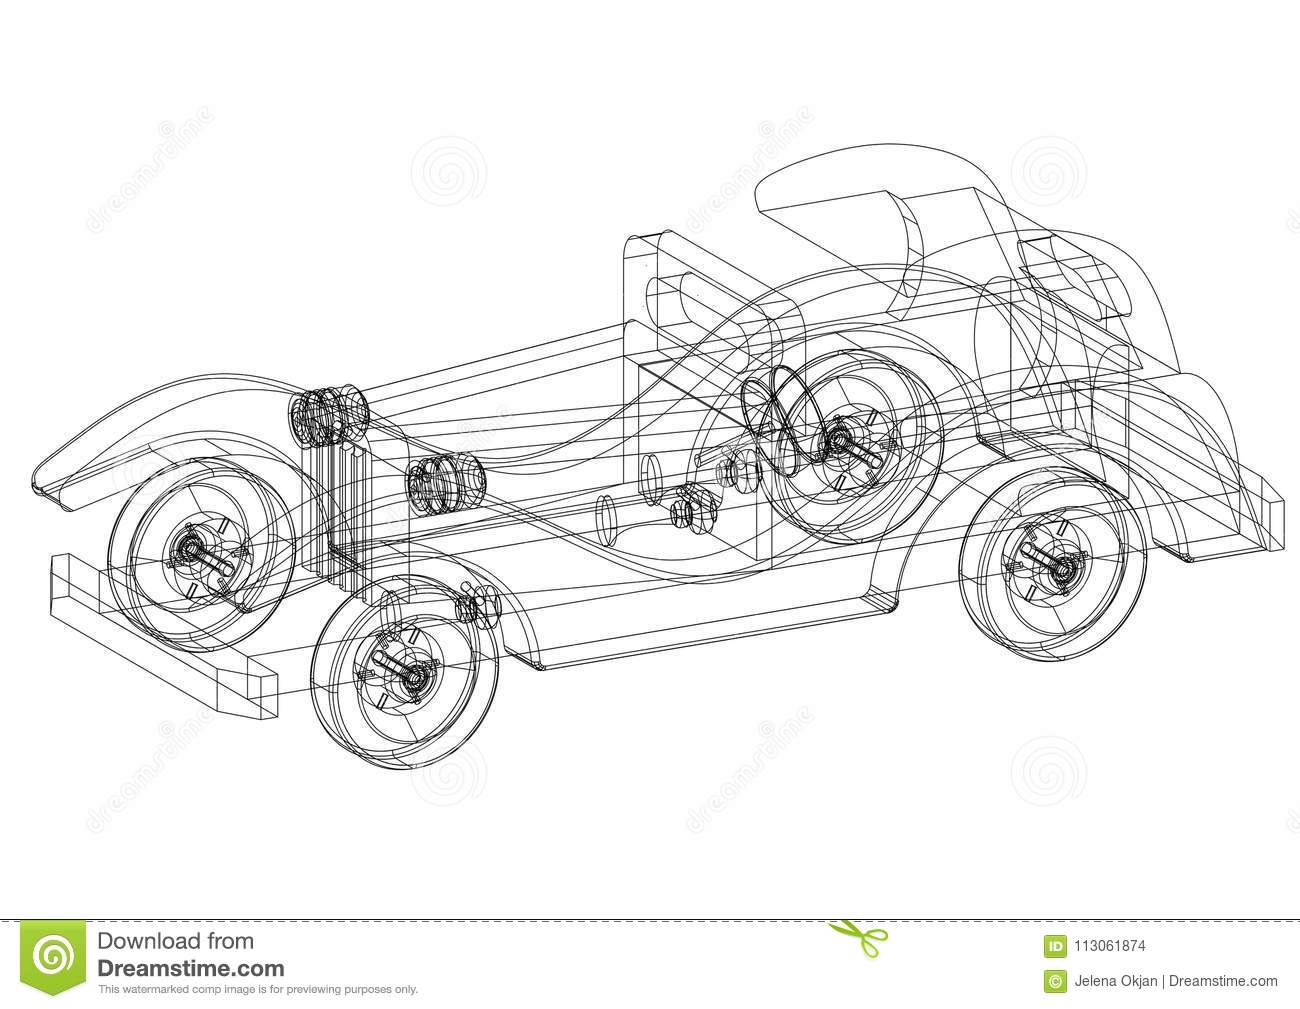 Classic old car 3d blueprint isolated stock illustration download classic old car 3d blueprint isolated stock illustration illustration of engineering graphic malvernweather Image collections